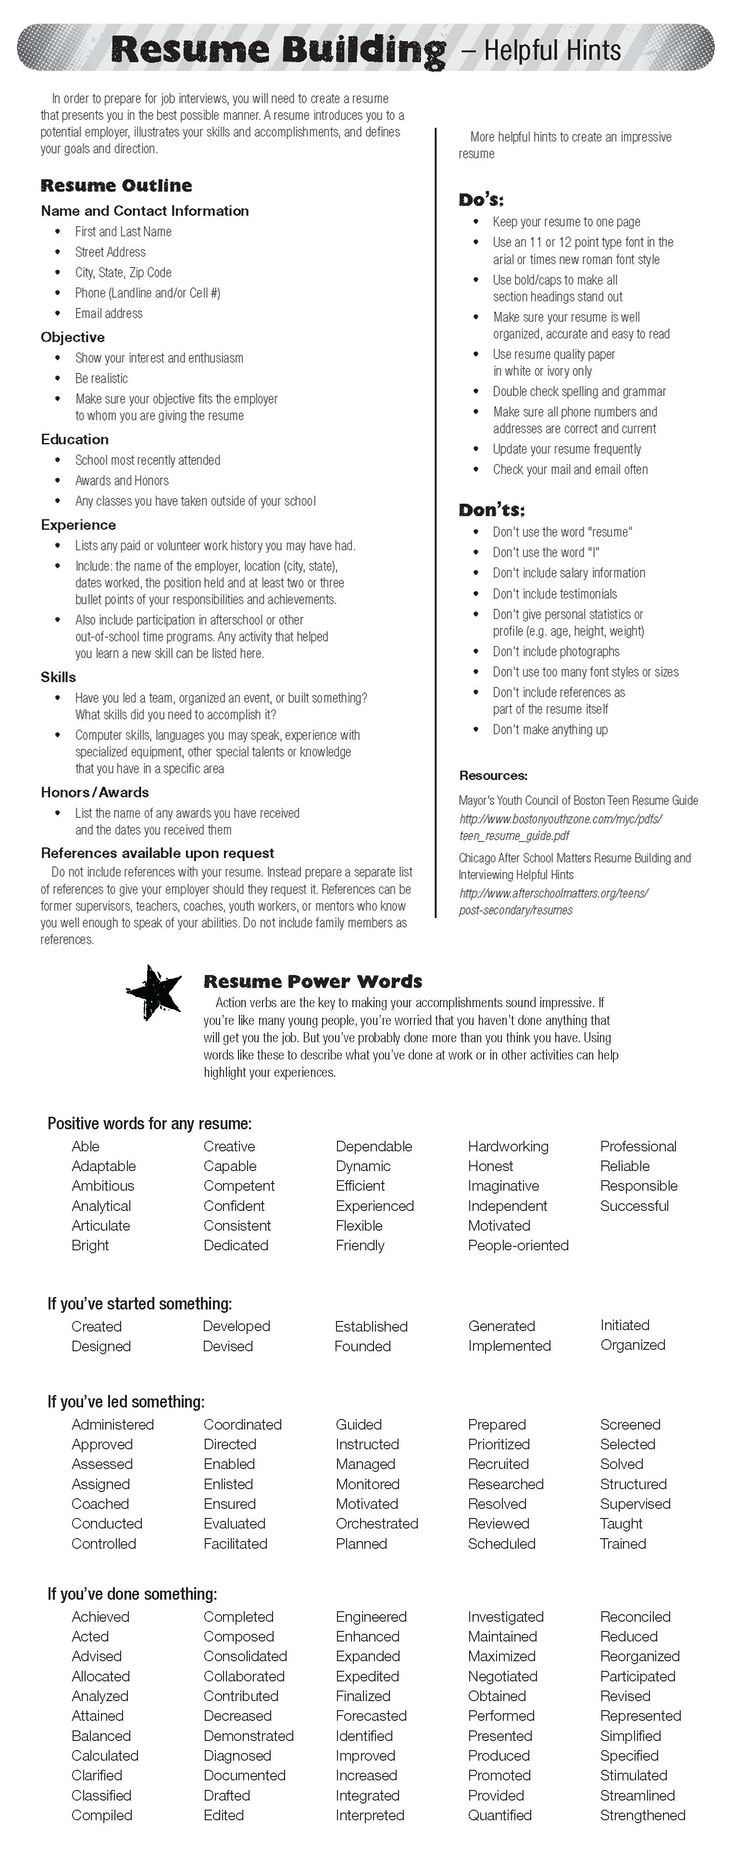 Opposenewapstandardsus  Outstanding  Ideas About Resume On Pinterest  Cv Format Resume  With Engaging Check Out Todays Resume Building Tips Resume Resumepowerwords With Beautiful Architecture Resumes Also Posting Resume Online In Addition Transferable Skills Resume And Build My Resume For Me As Well As Excel Vba On Error Resume Next Additionally Resume Maker Software From Pinterestcom With Opposenewapstandardsus  Engaging  Ideas About Resume On Pinterest  Cv Format Resume  With Beautiful Check Out Todays Resume Building Tips Resume Resumepowerwords And Outstanding Architecture Resumes Also Posting Resume Online In Addition Transferable Skills Resume From Pinterestcom